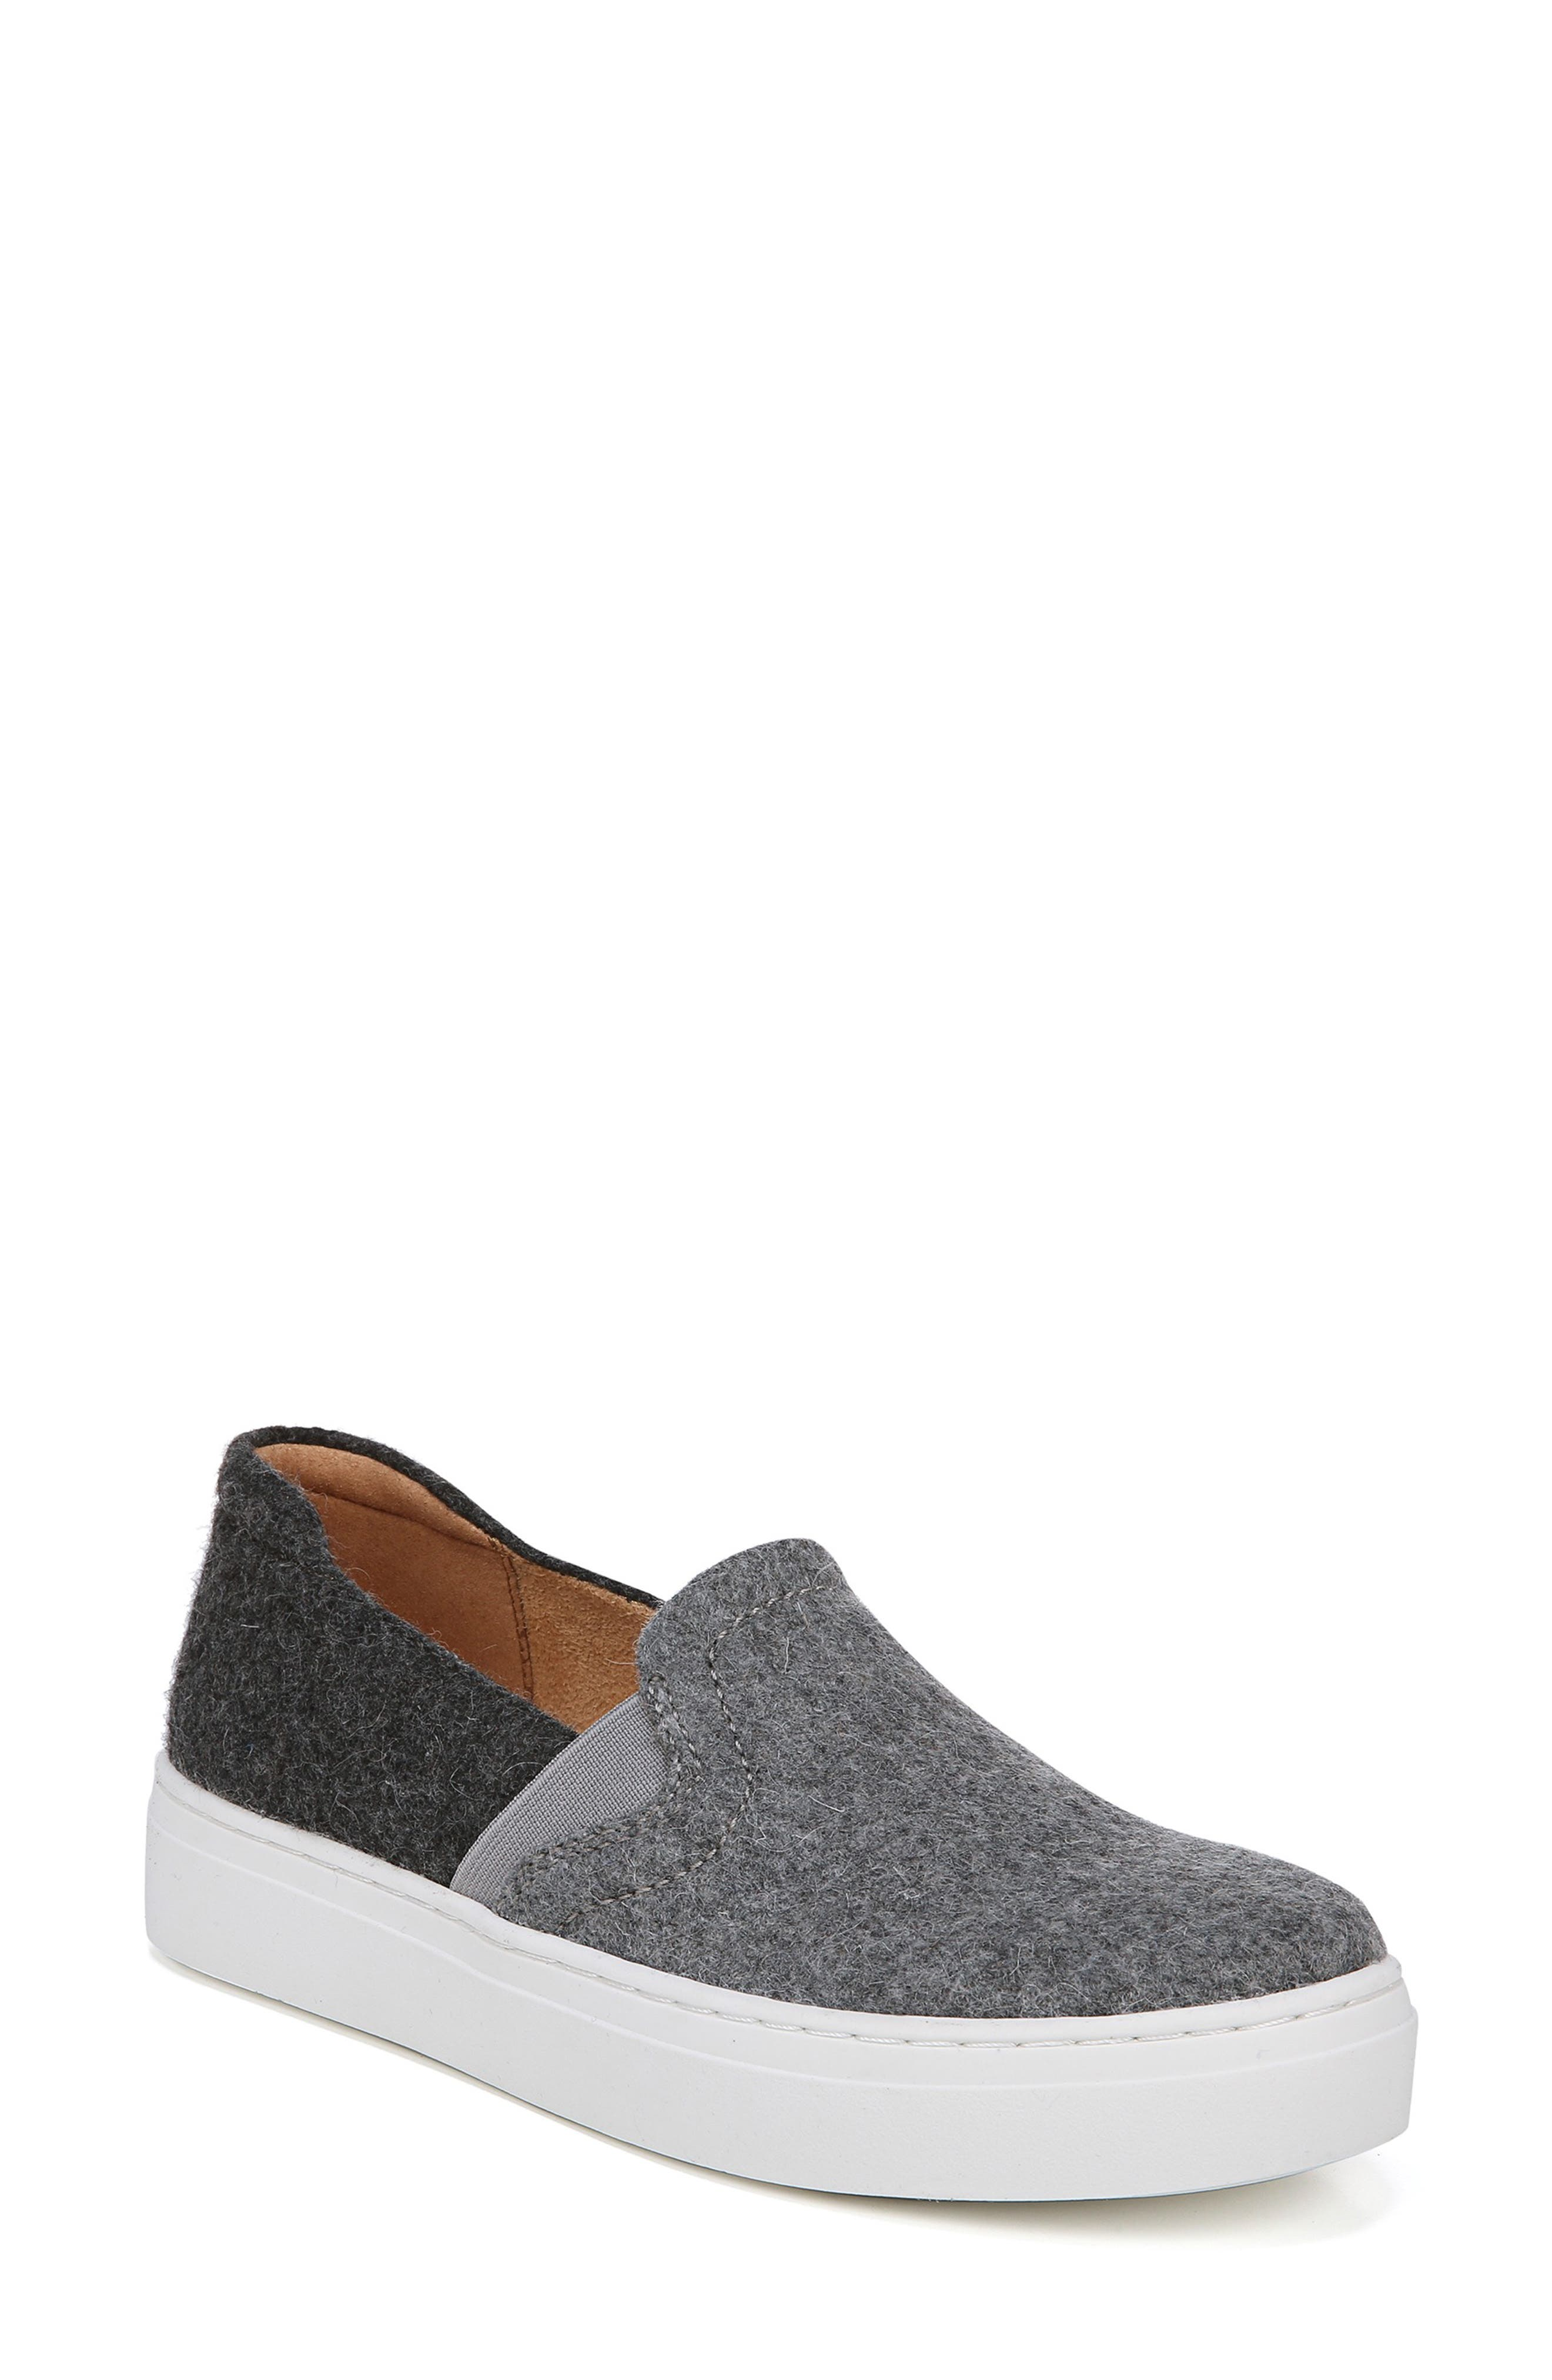 Naturalizer Carly Slip-On Sneaker, Grey